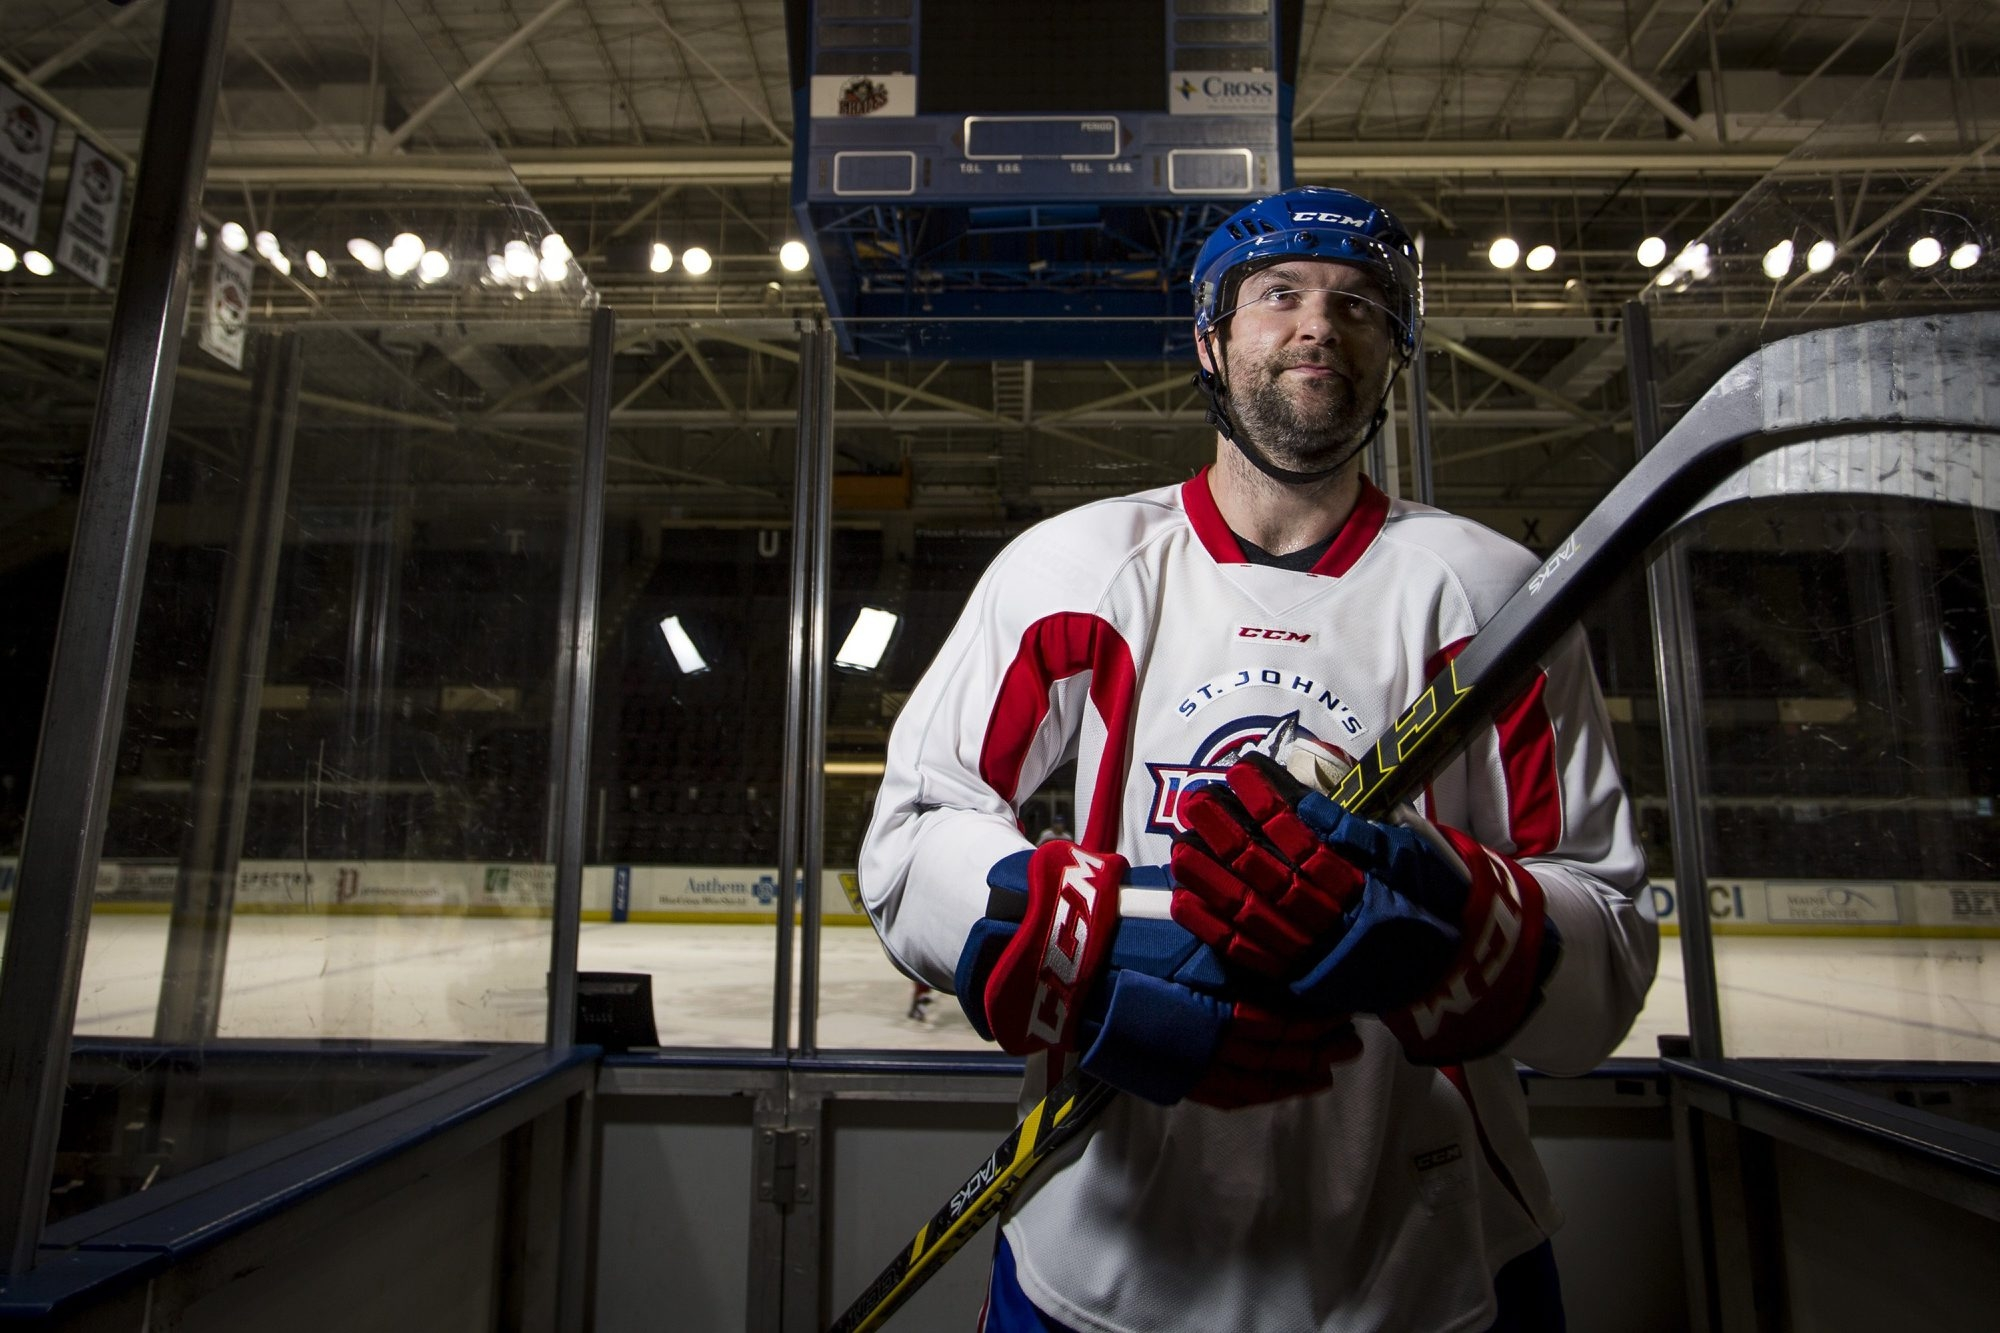 A few months ago, former Sabre John Scott was convinced he would need his Michigan Tech engineering degree upon retirement. Now he's optimistic he'll be able to lead to a lifelong hockey career. (Portland Press Herald)